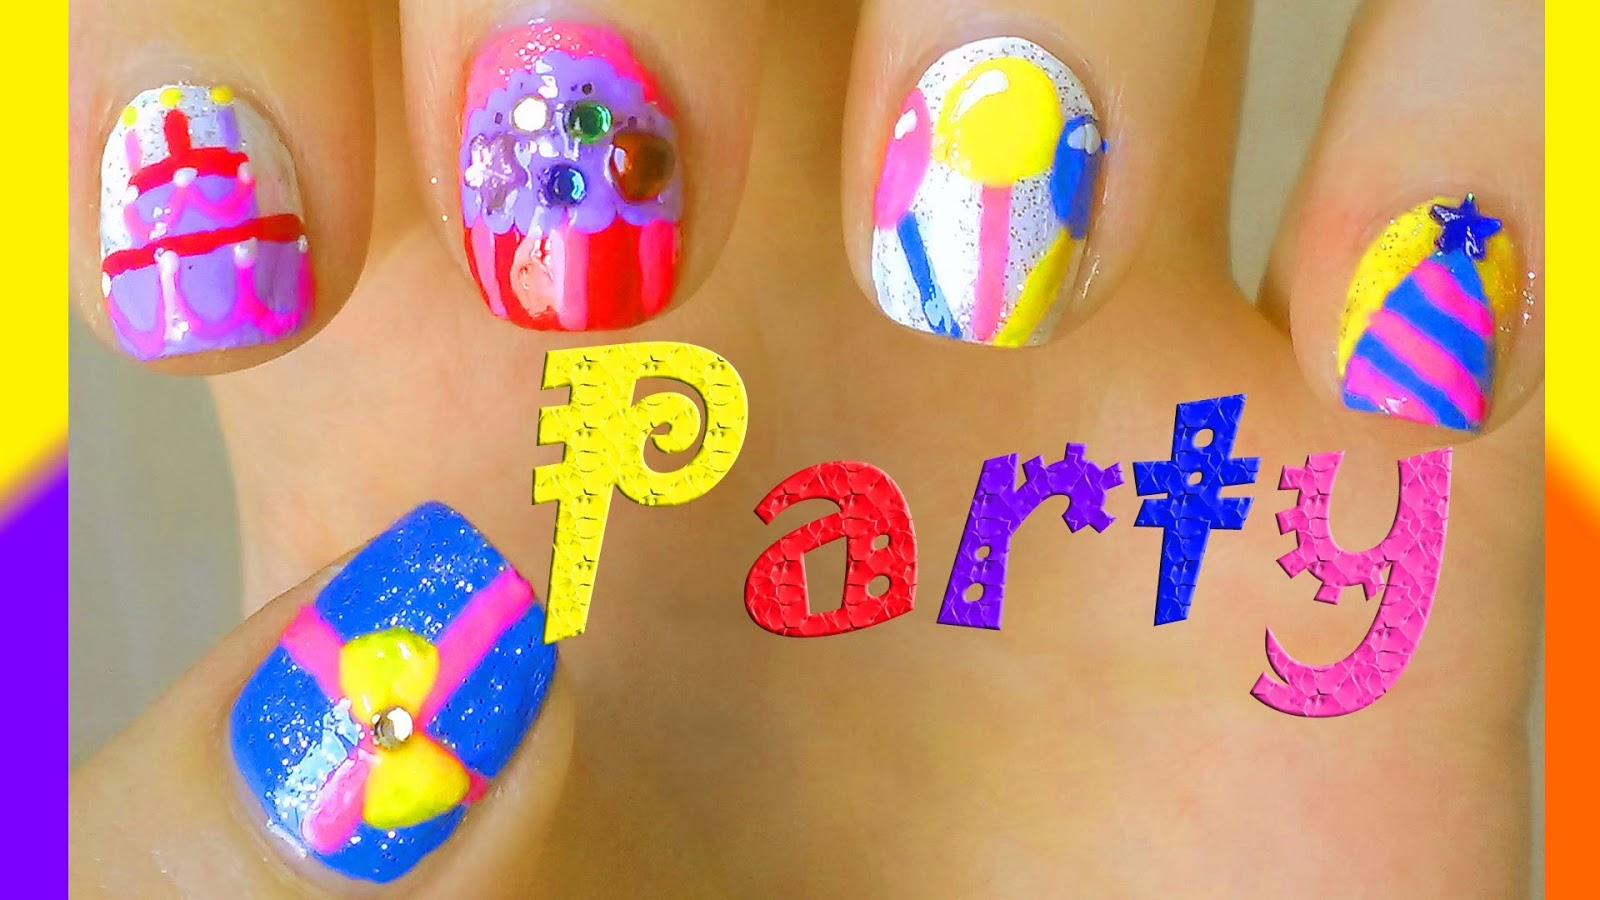 Easy And Stylish Nail Art Designs For Friendship Day - NailsDesign ...